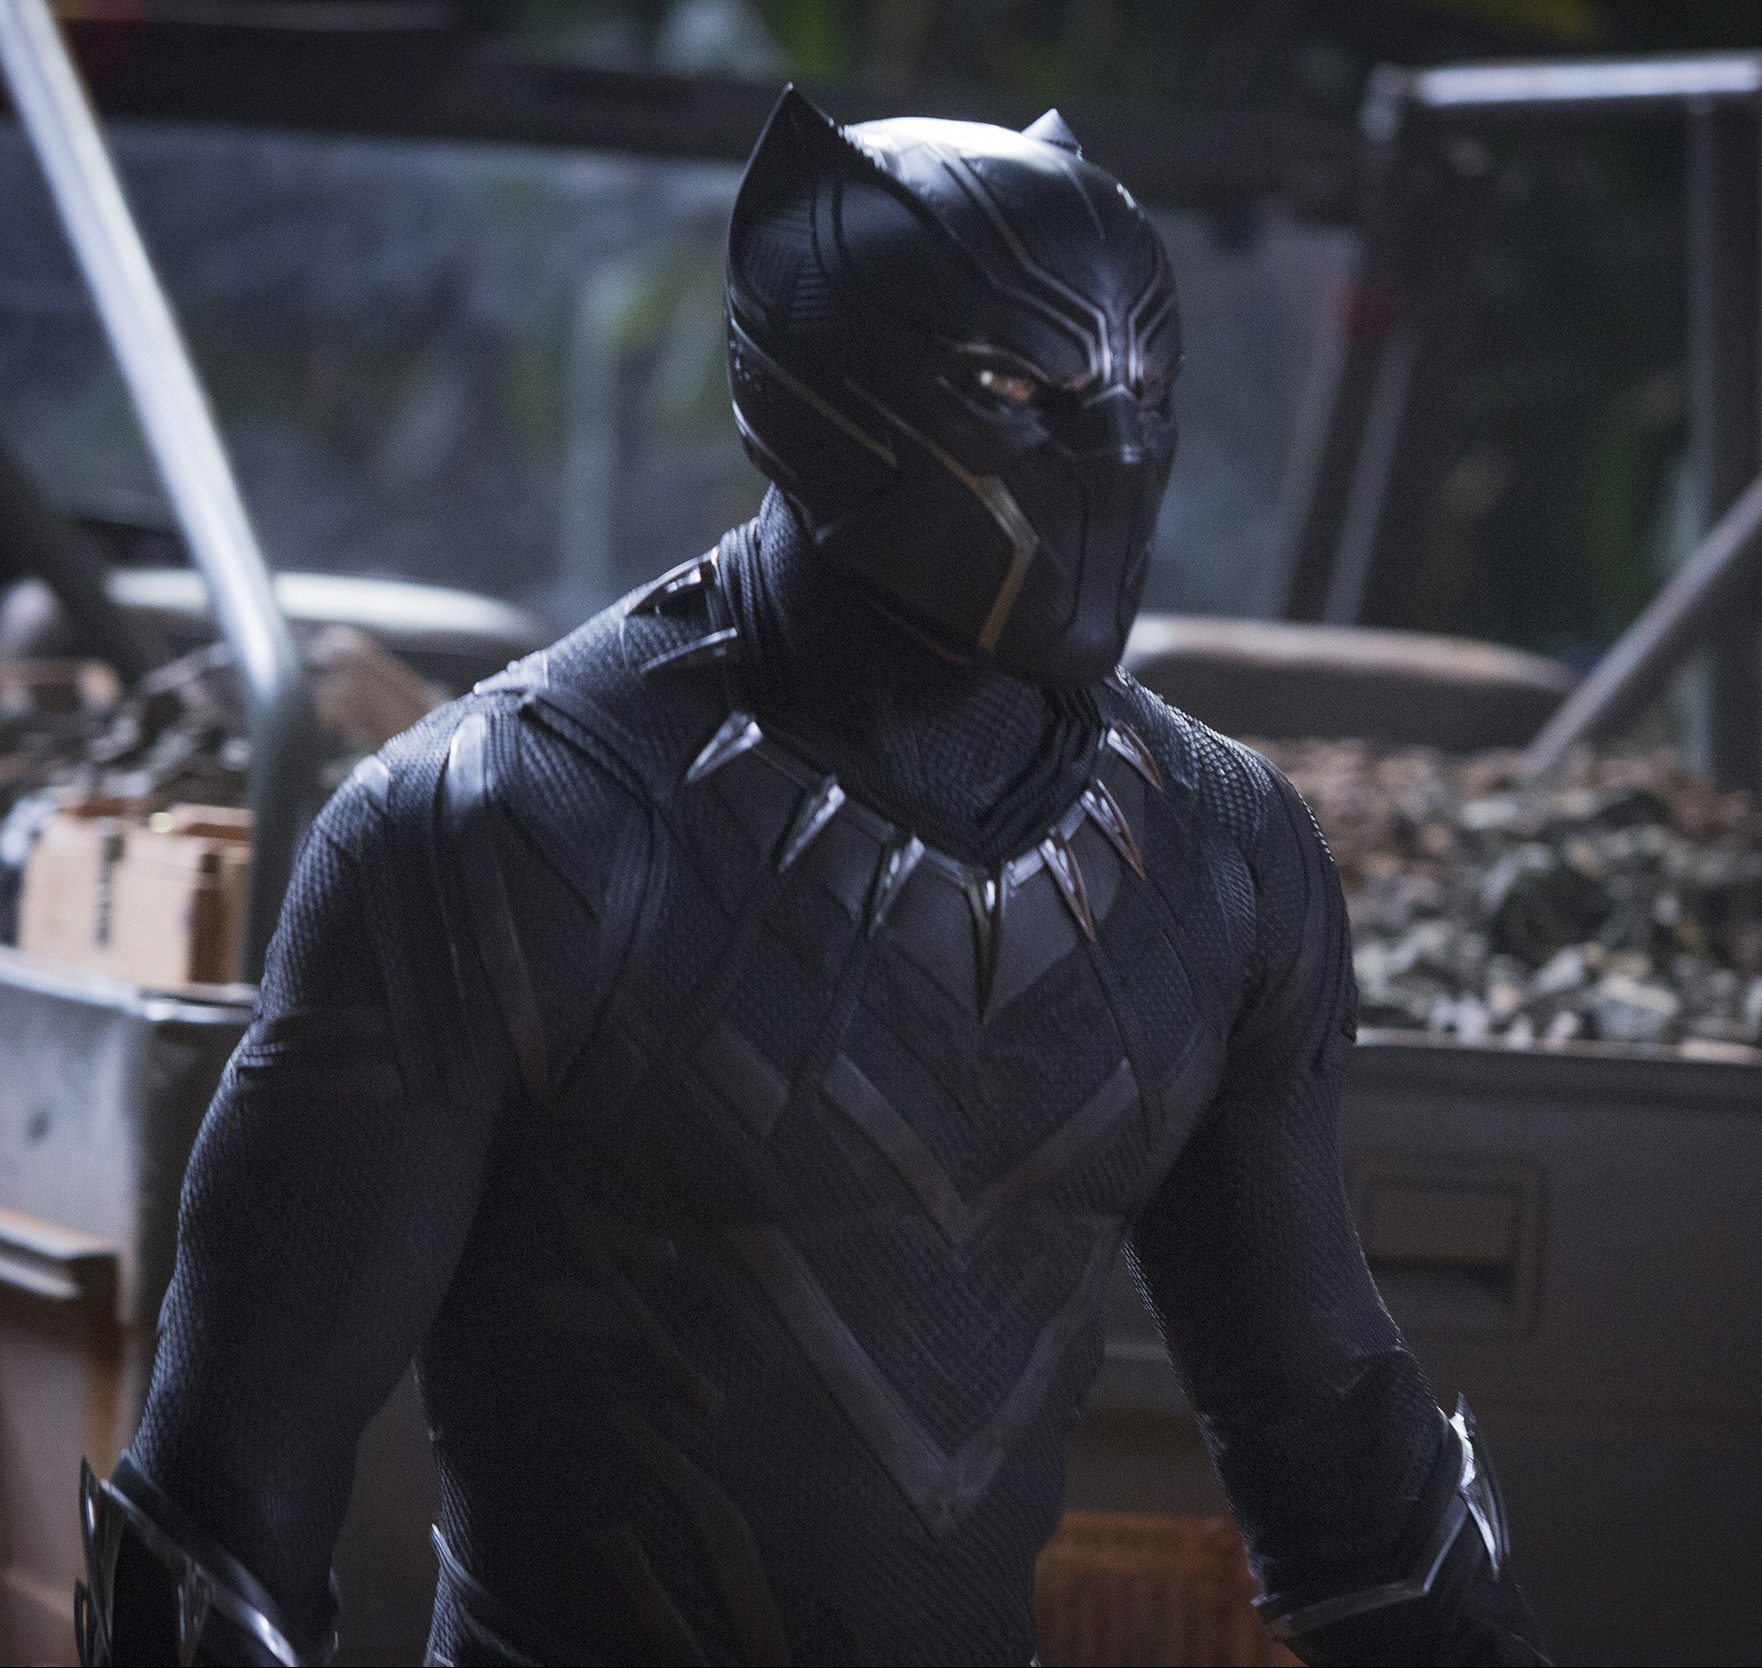 180205 black panther se 448p ddffb30a740caad0a183057db8473de1 e1607343523927 19 Things You Might Not Have Realised About Wesley Snipes